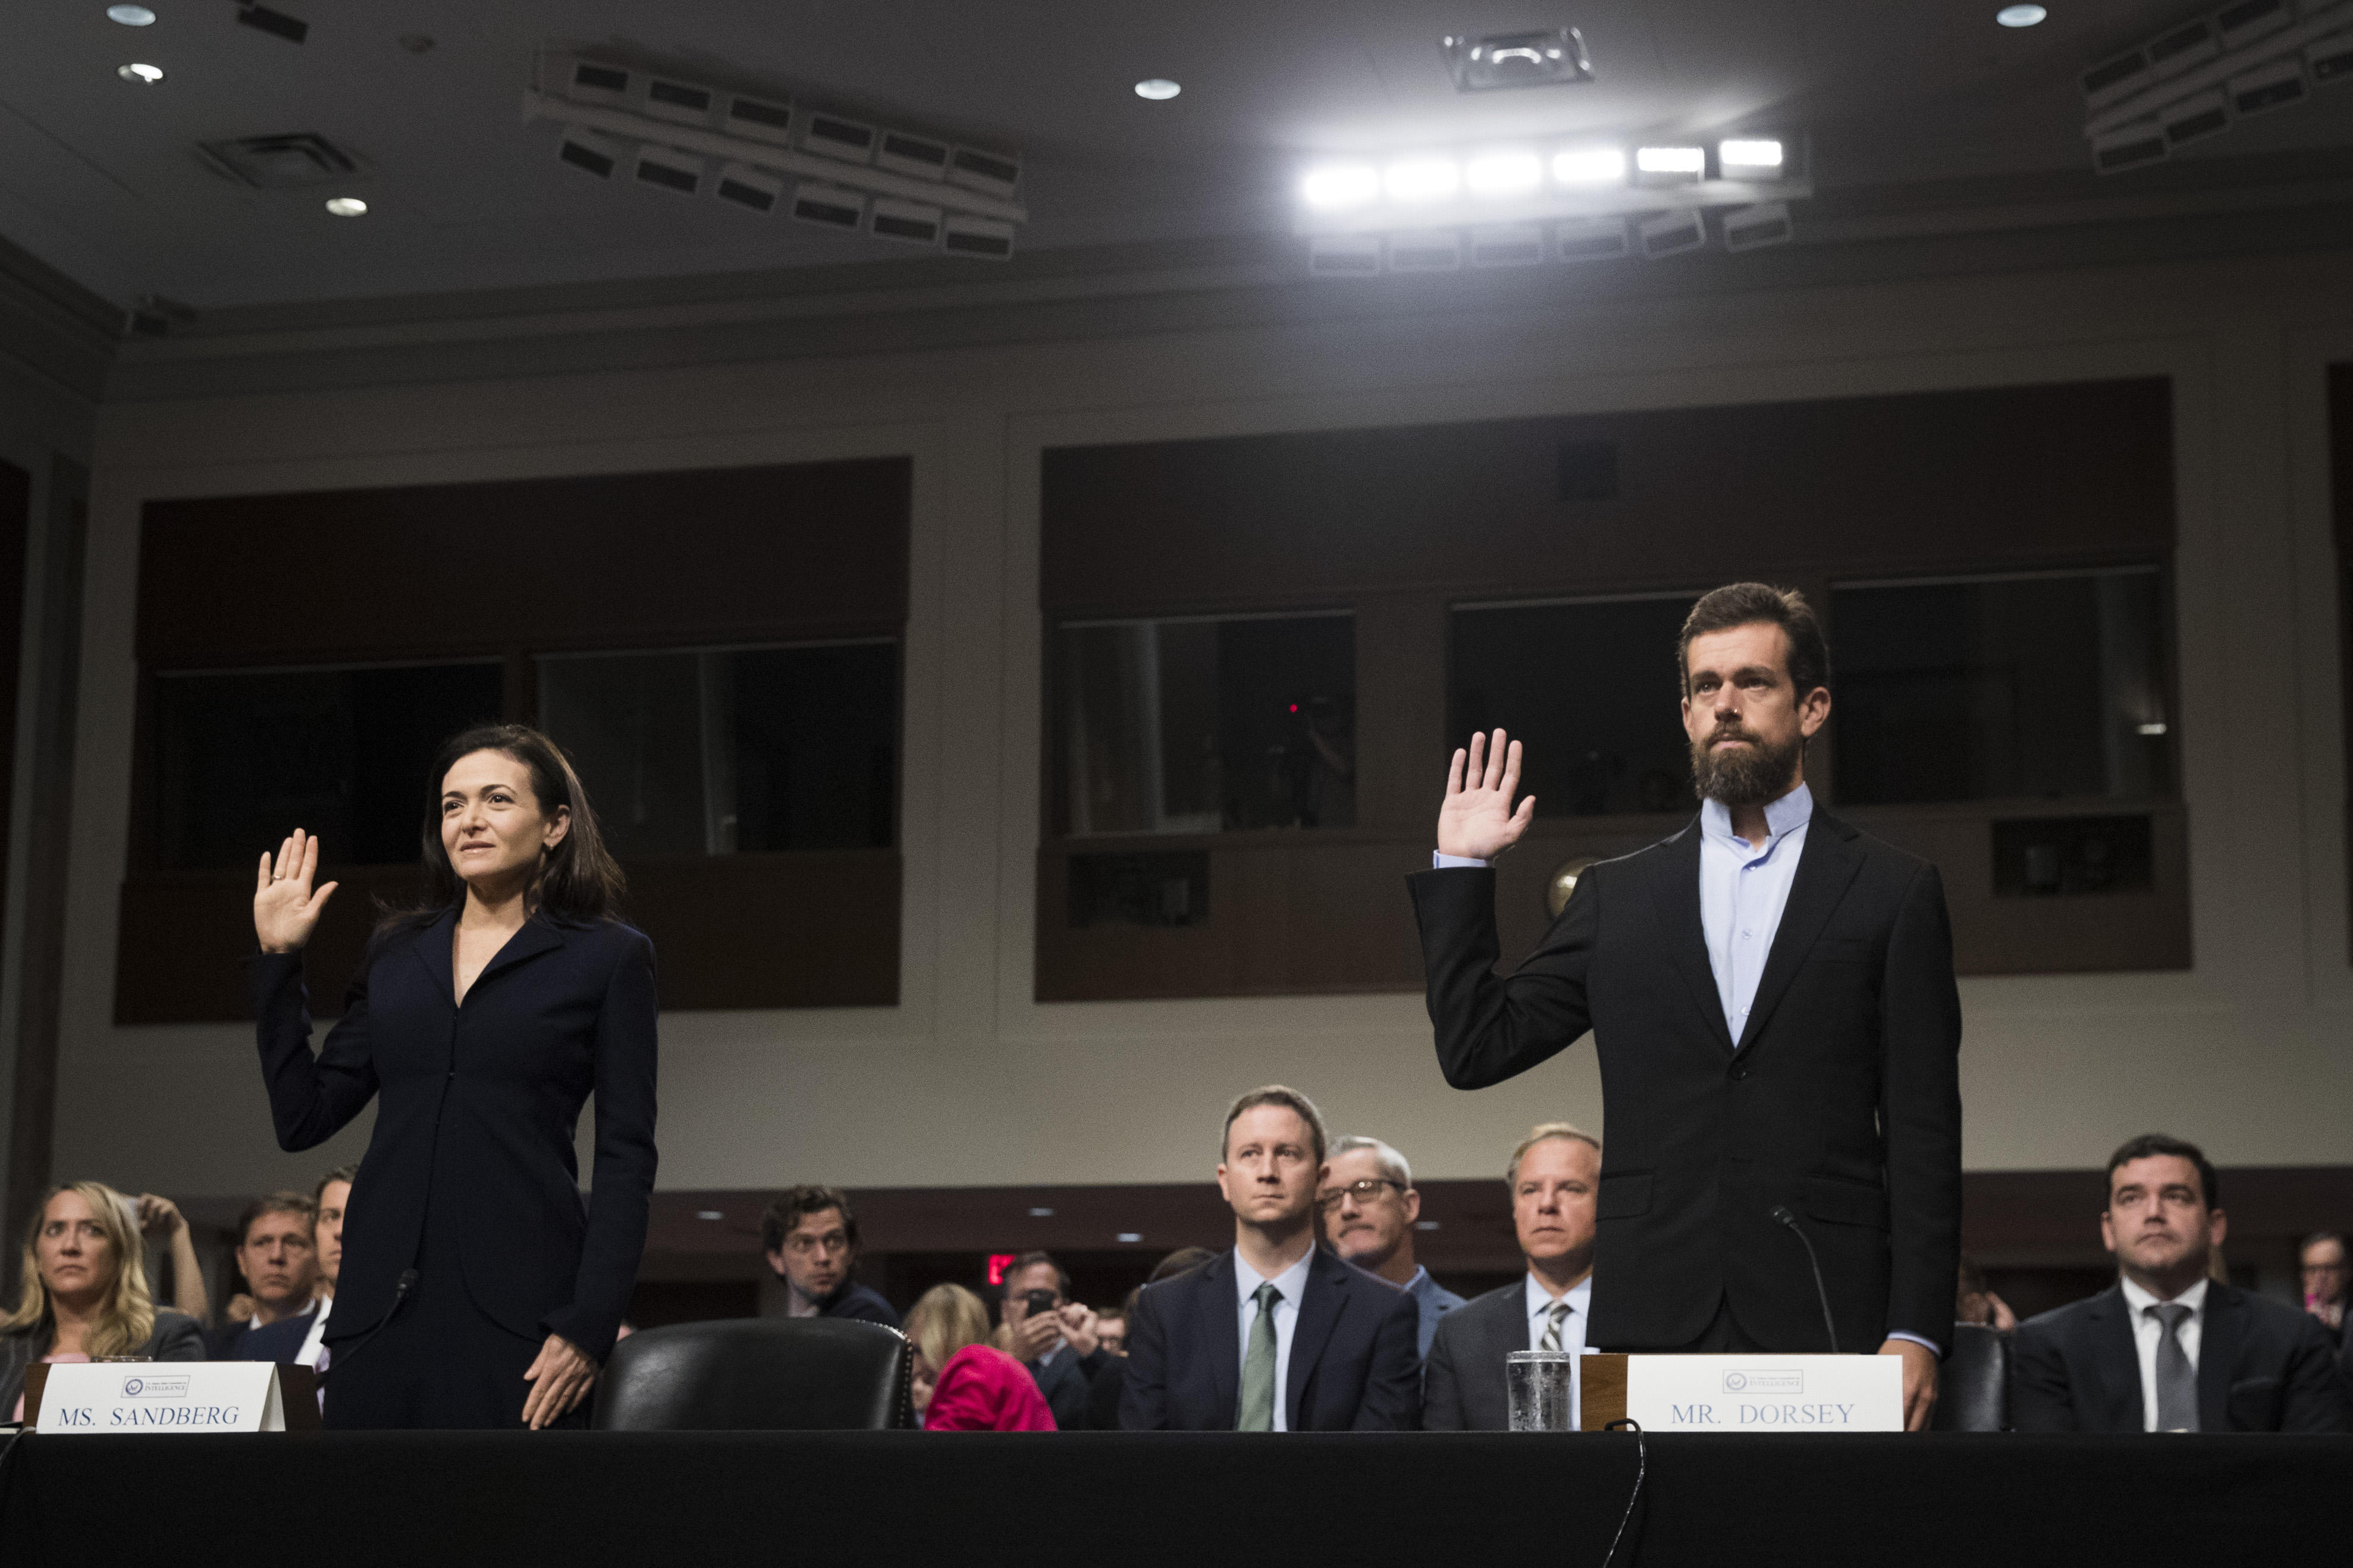 Facebook COO Sheryl Sandberg and Twitter CEO Jack Dorsey are sworn in at the start of the Senate intelligence committee hearing Wednesday.